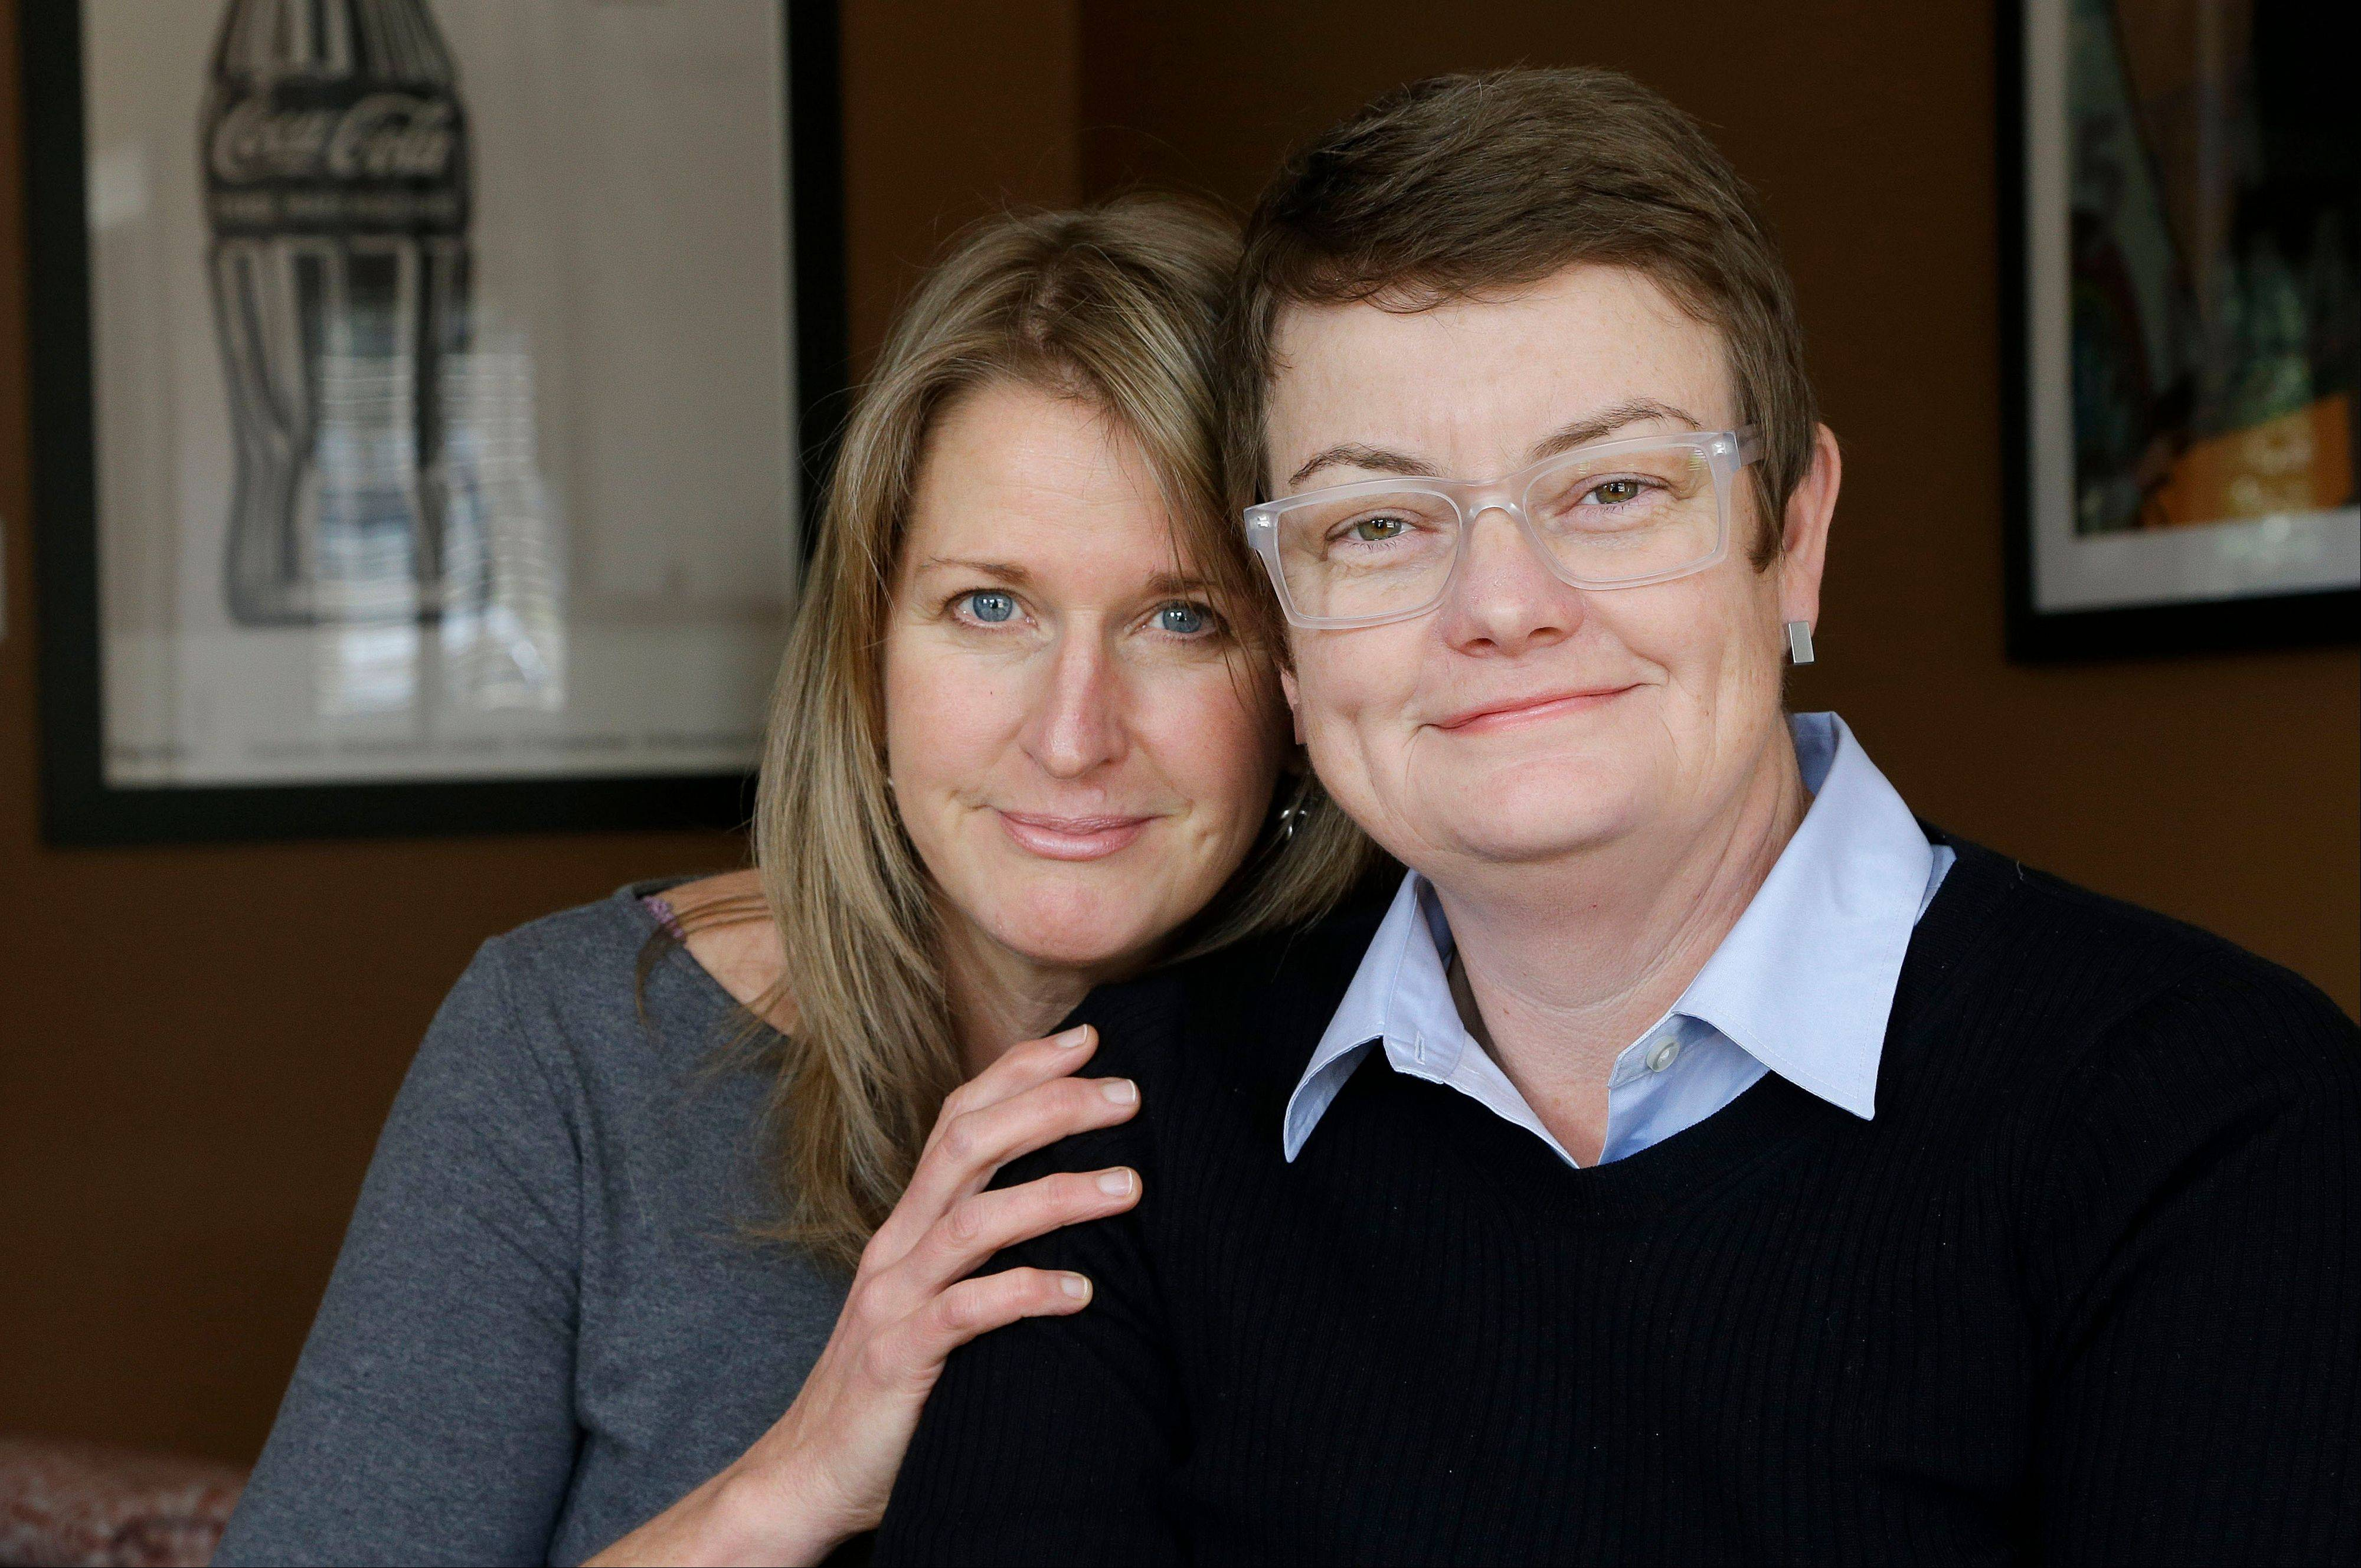 Sandy Stier, left, and Kris Perry, the couple at the center of the Supreme Court's consideration of gay marriage, are seen at their home in Berkeley, Calif.